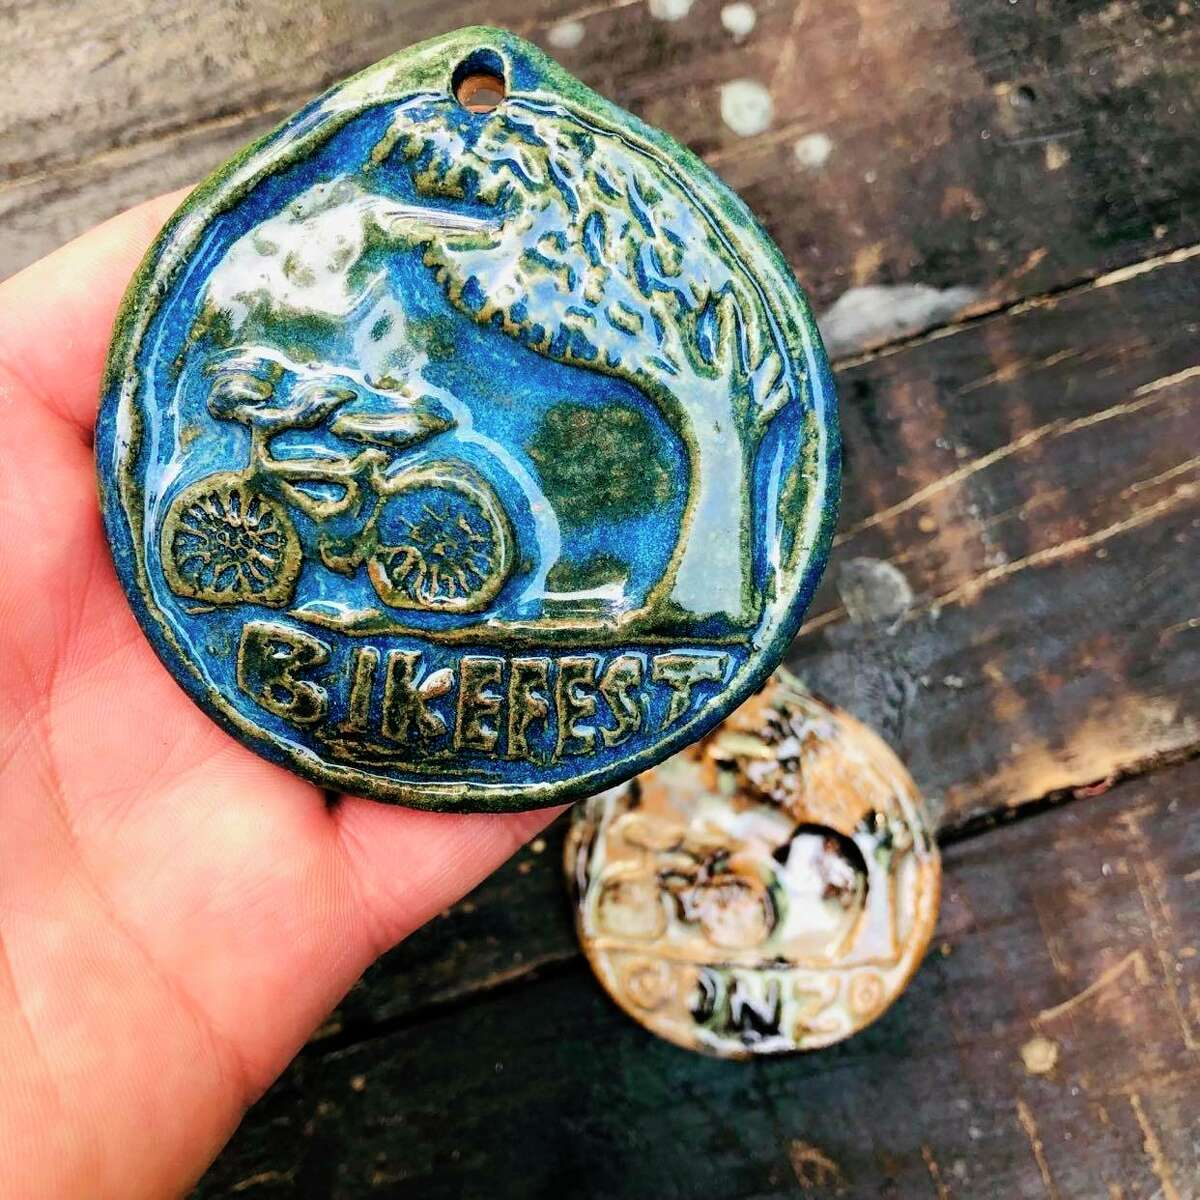 Benzie Sunrise Rotary is getting ready for its big Bike Benzie event at Crystal Mountain, which will feature one-of-a-kind medals made by Corey Bechler. (Courtesy Photo)